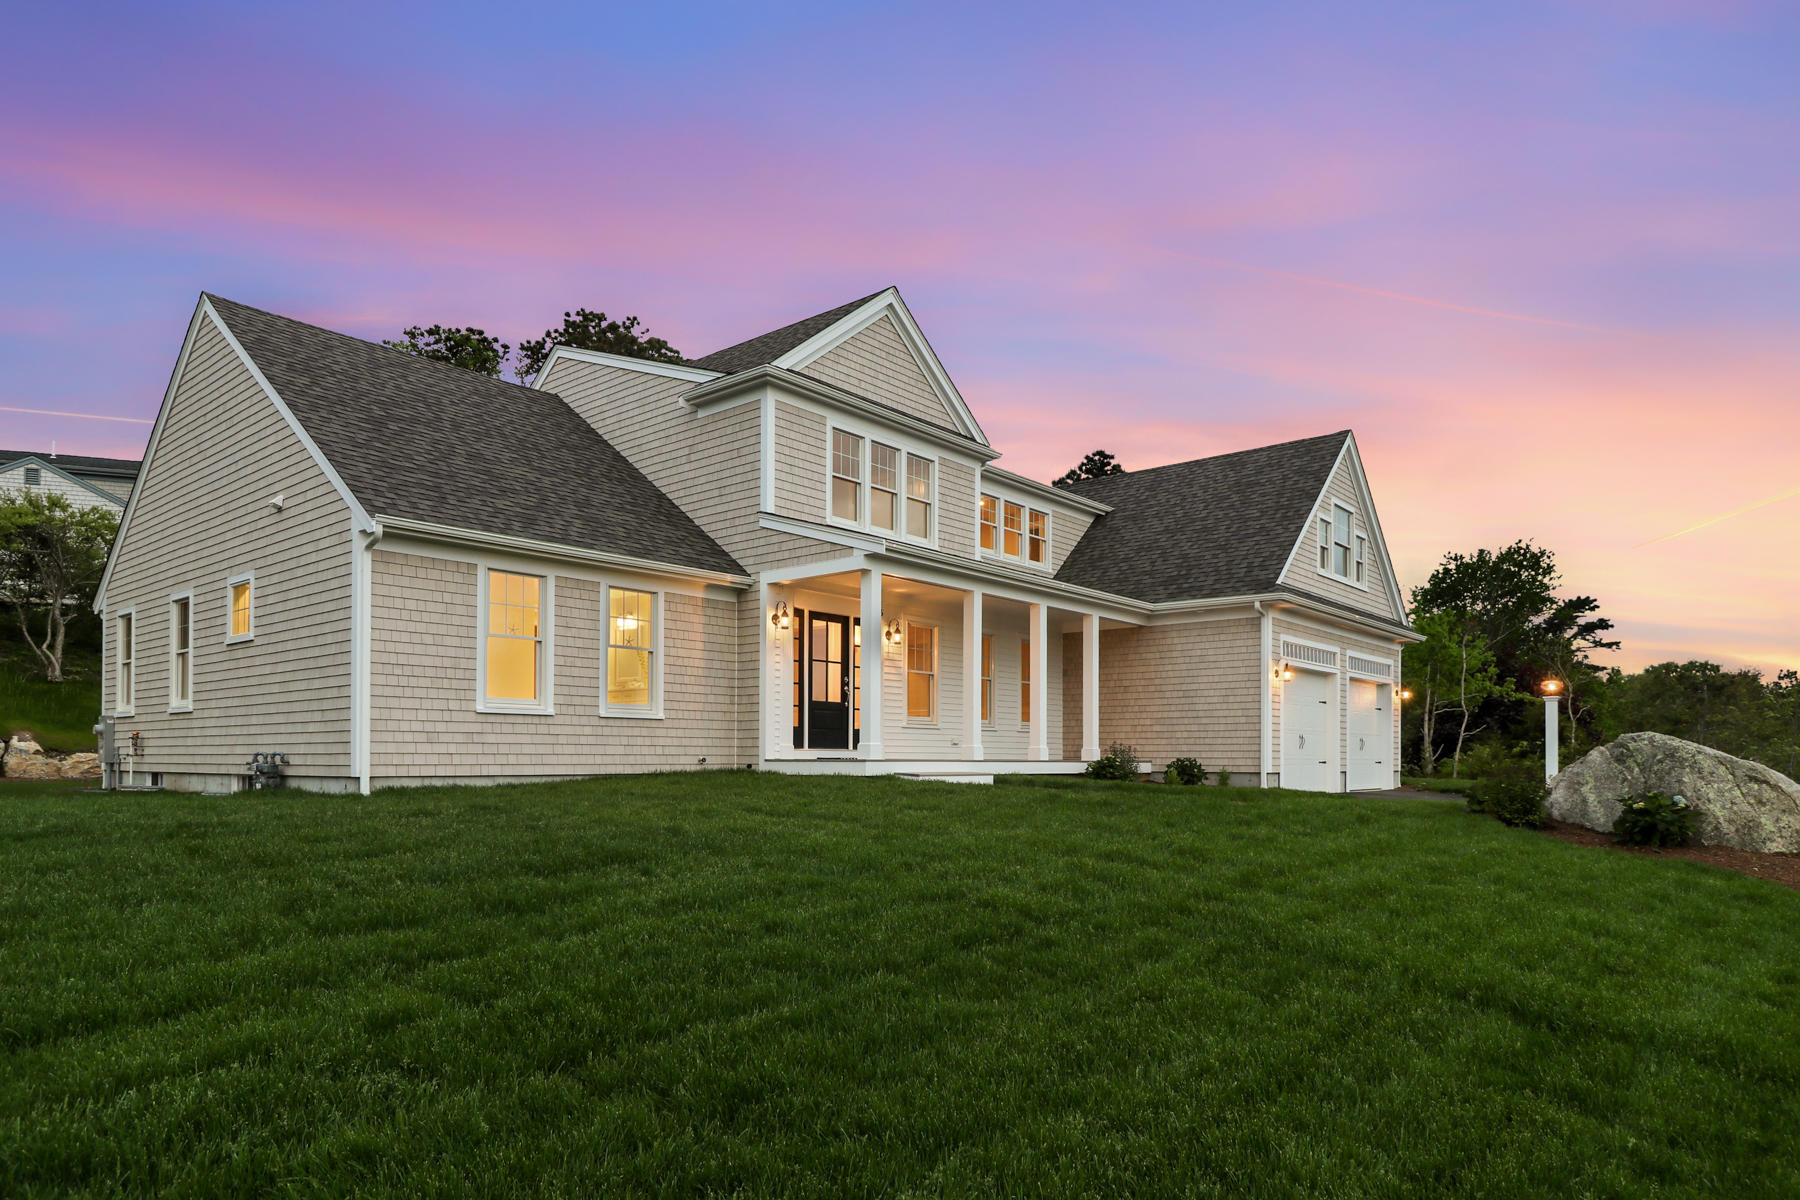 262 A P Newcomb Road, Brewster MA, 02631 sales details